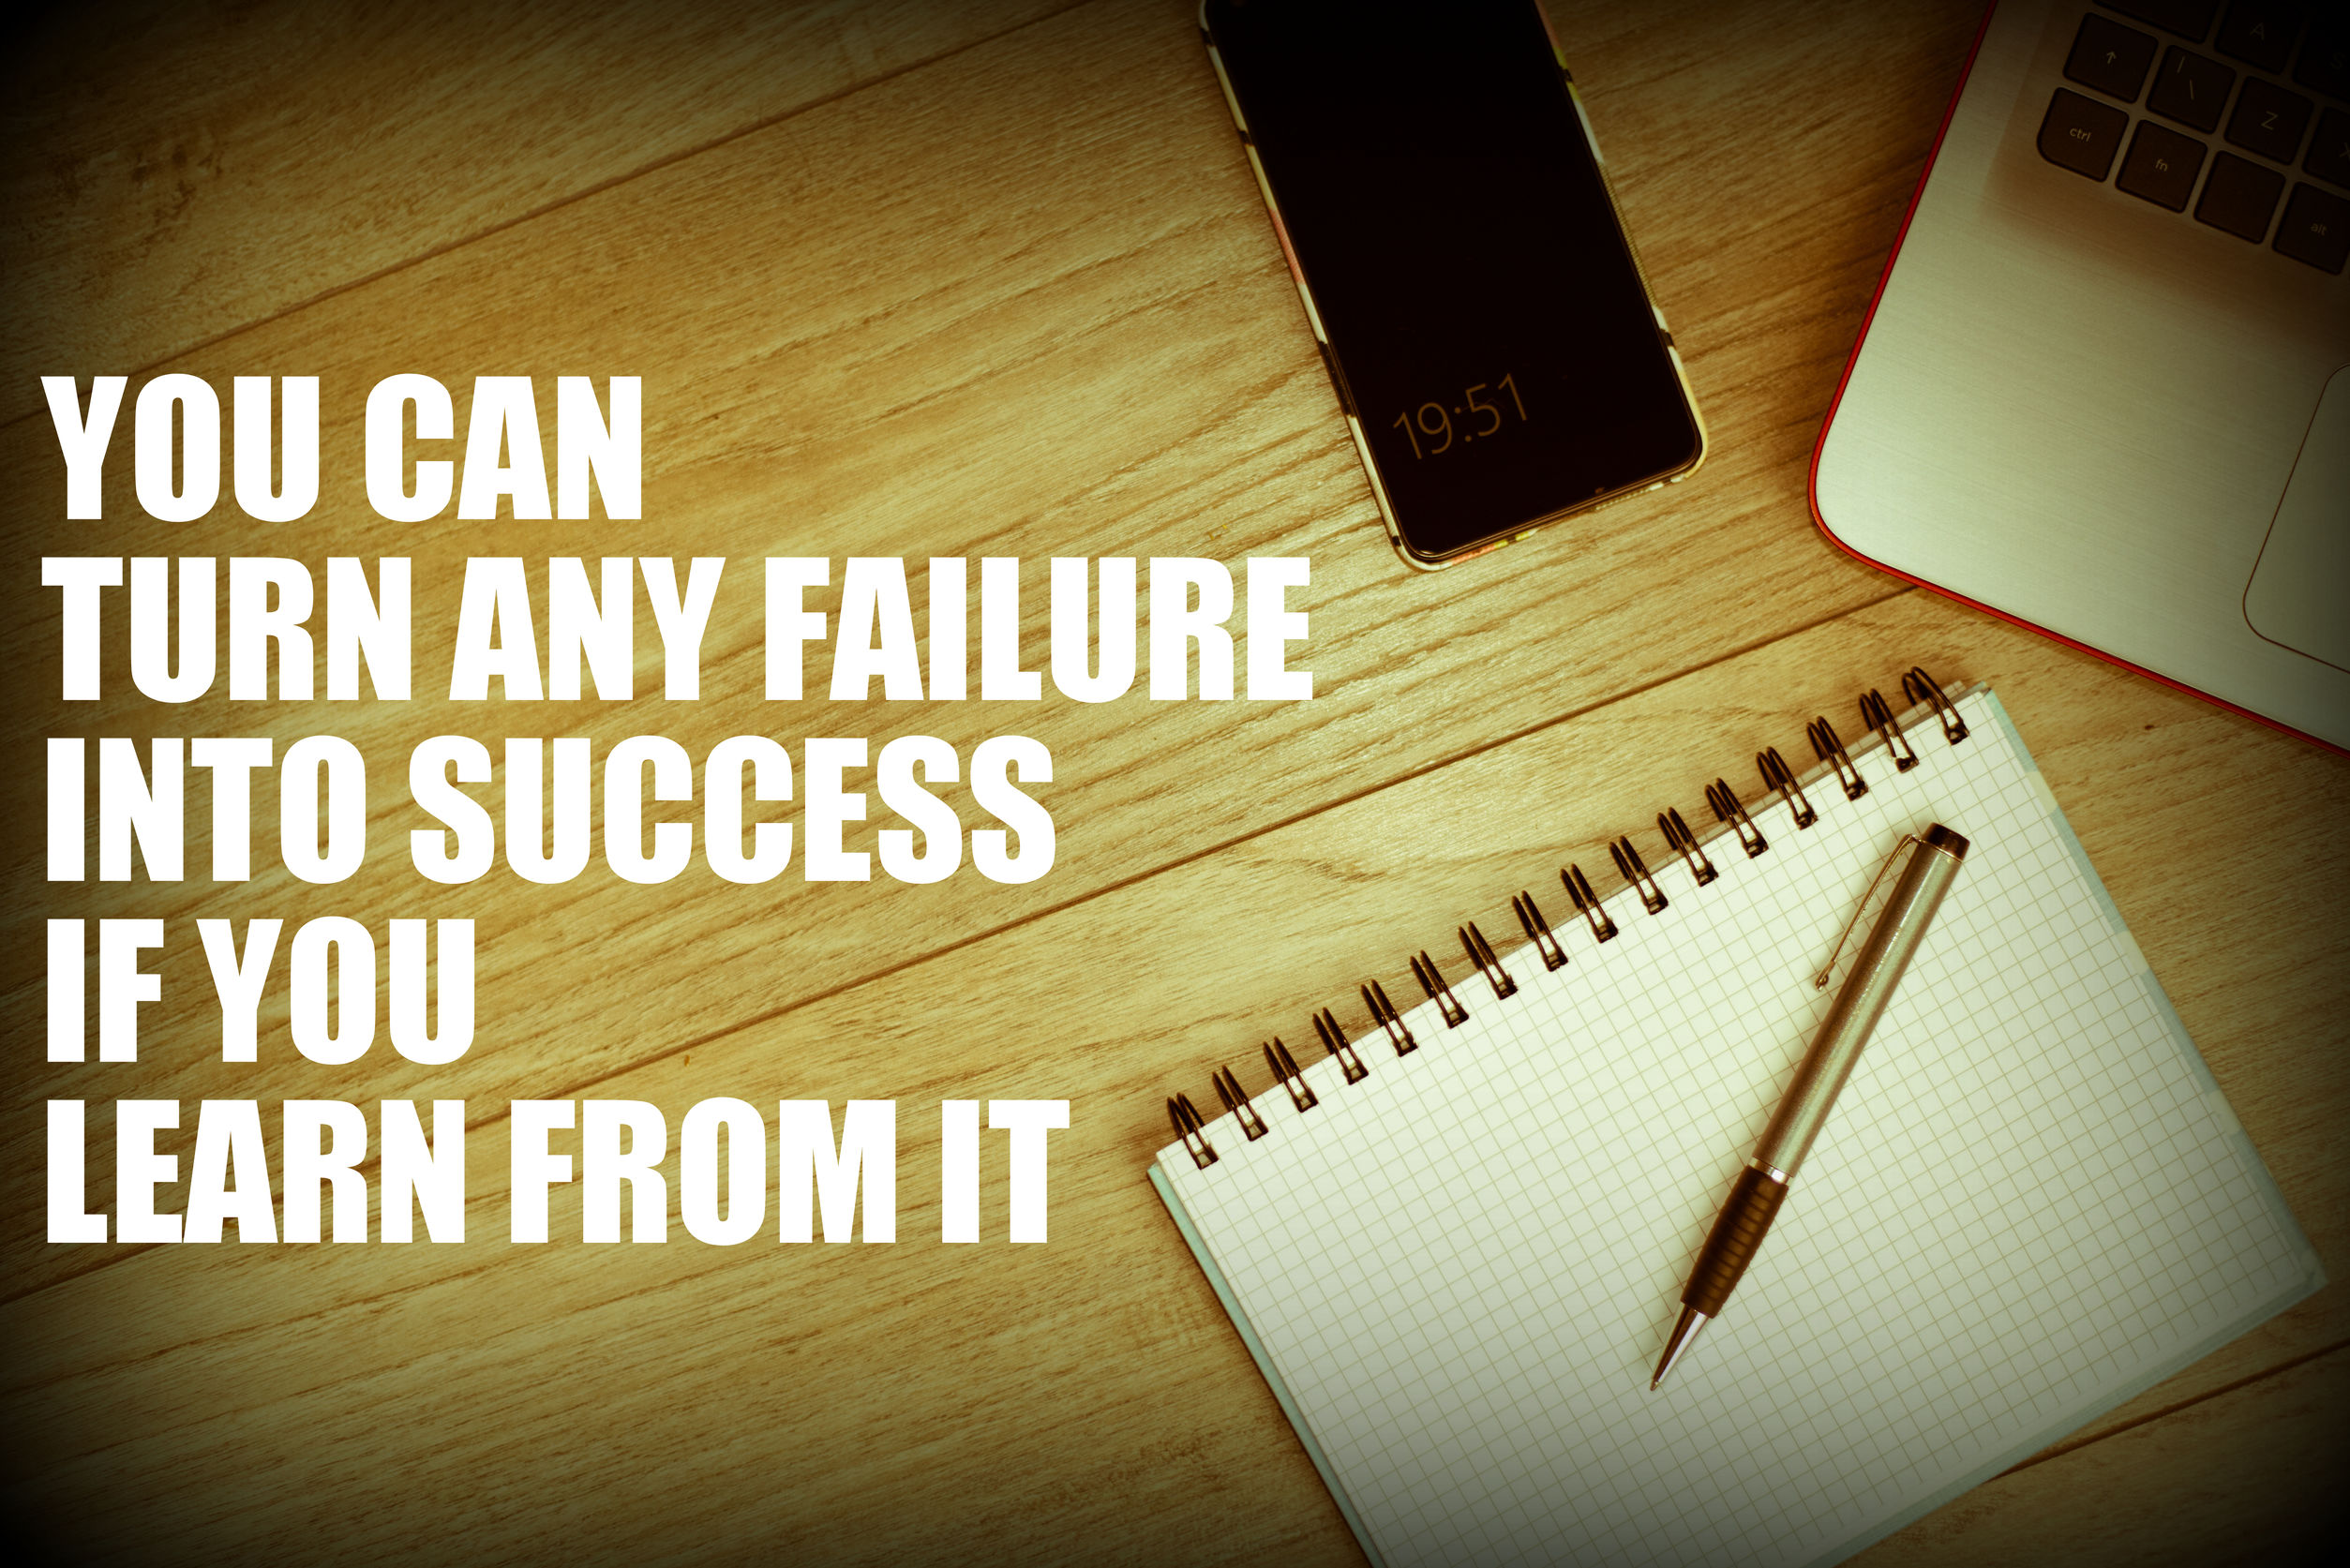 You can turn any failure into success if you learn from it